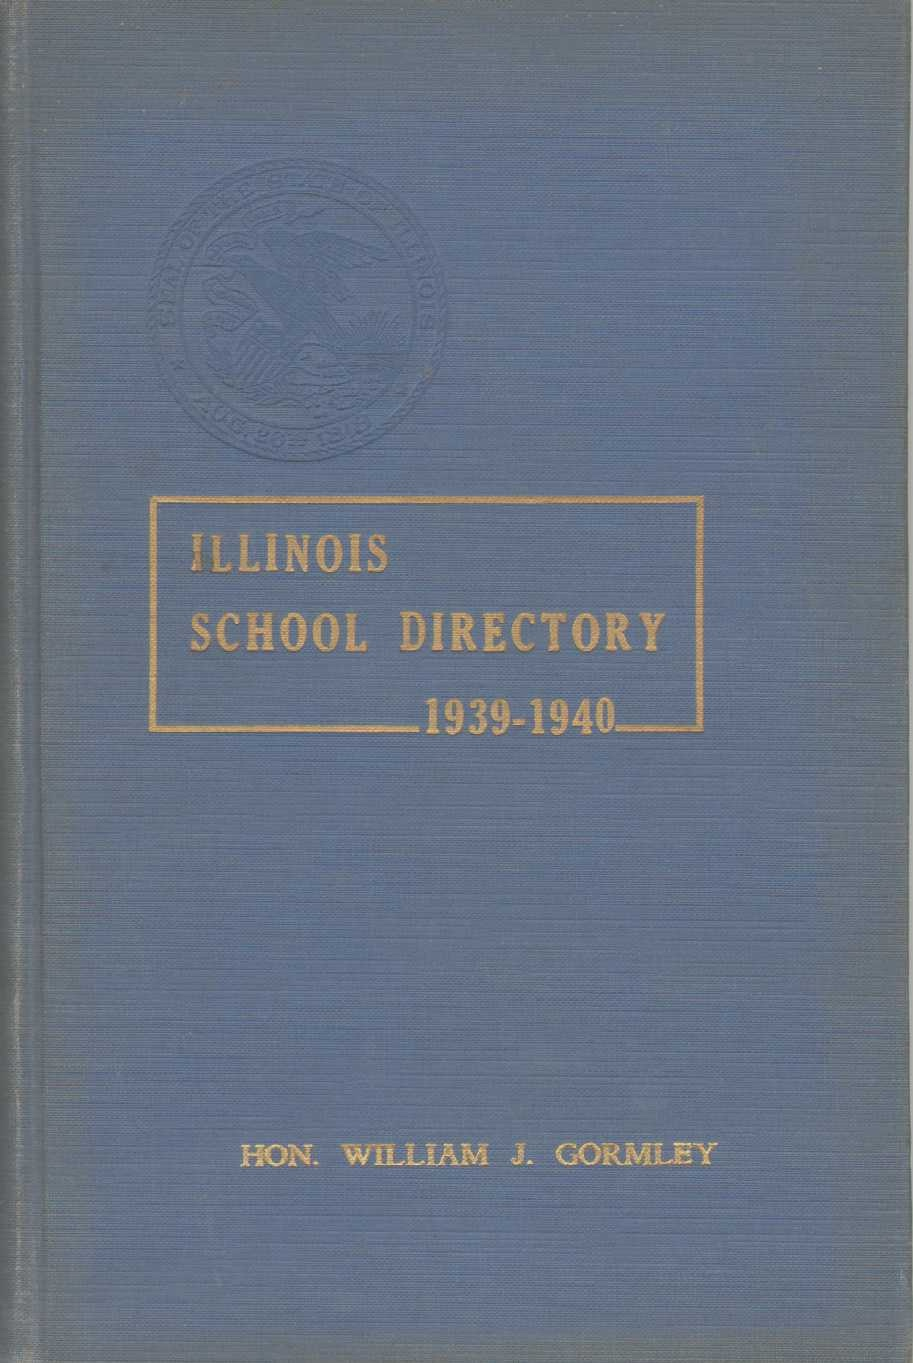 Image for ILLINOIS SCHOOL DIRECTORY 1939-1940 Illinois Teachers for Illinois Schools Circular 310